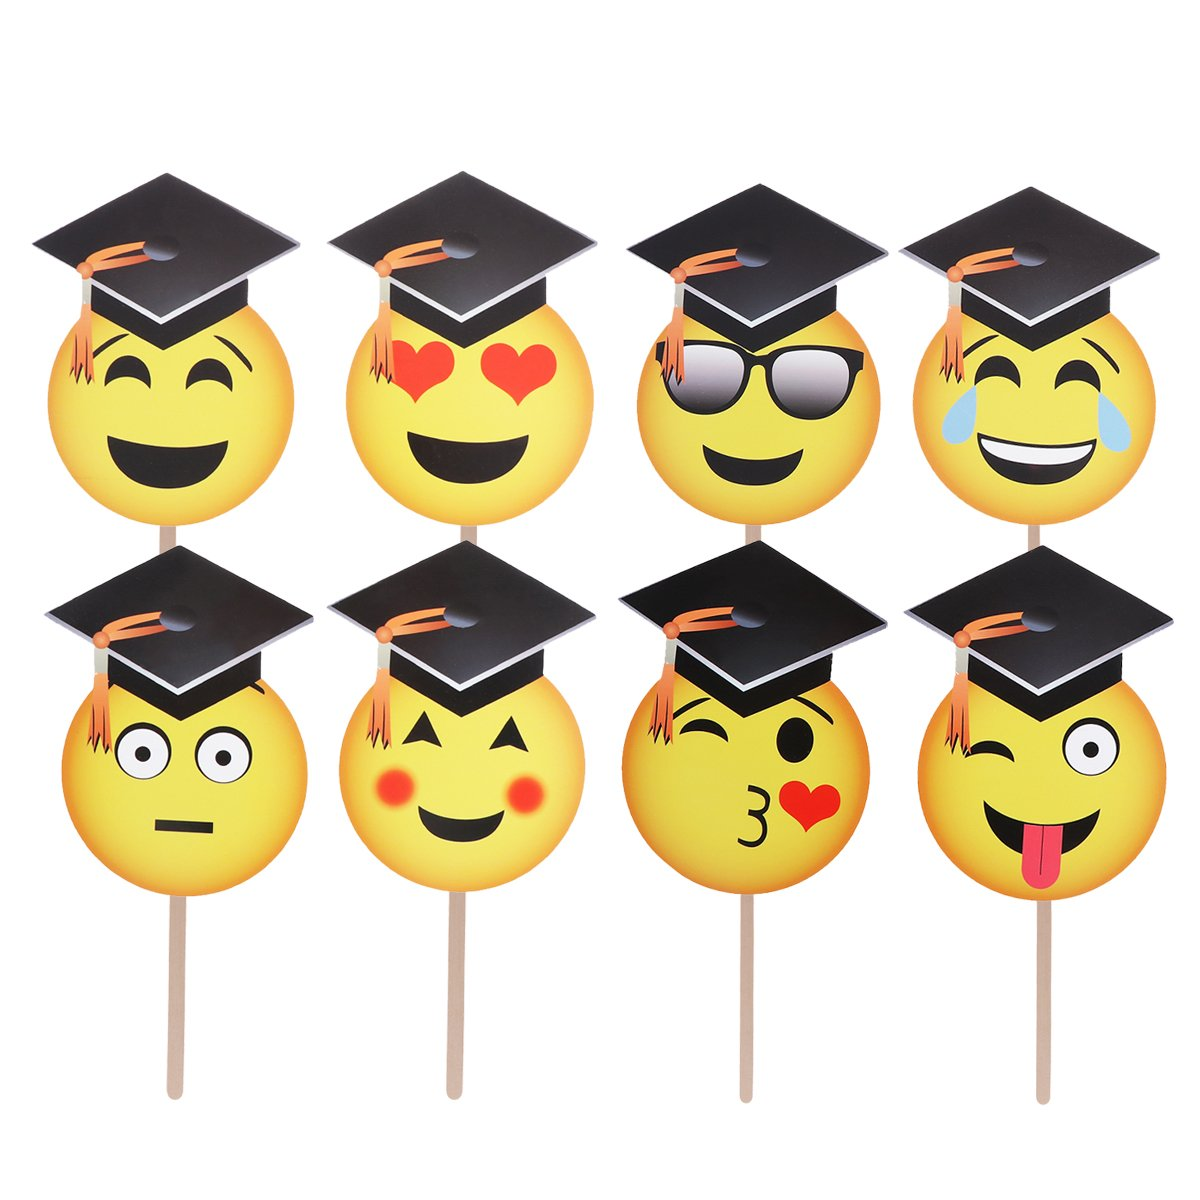 BESTOYARD Facial Expressions Photo Booth Props for Graduation Party Decoration 8PCS